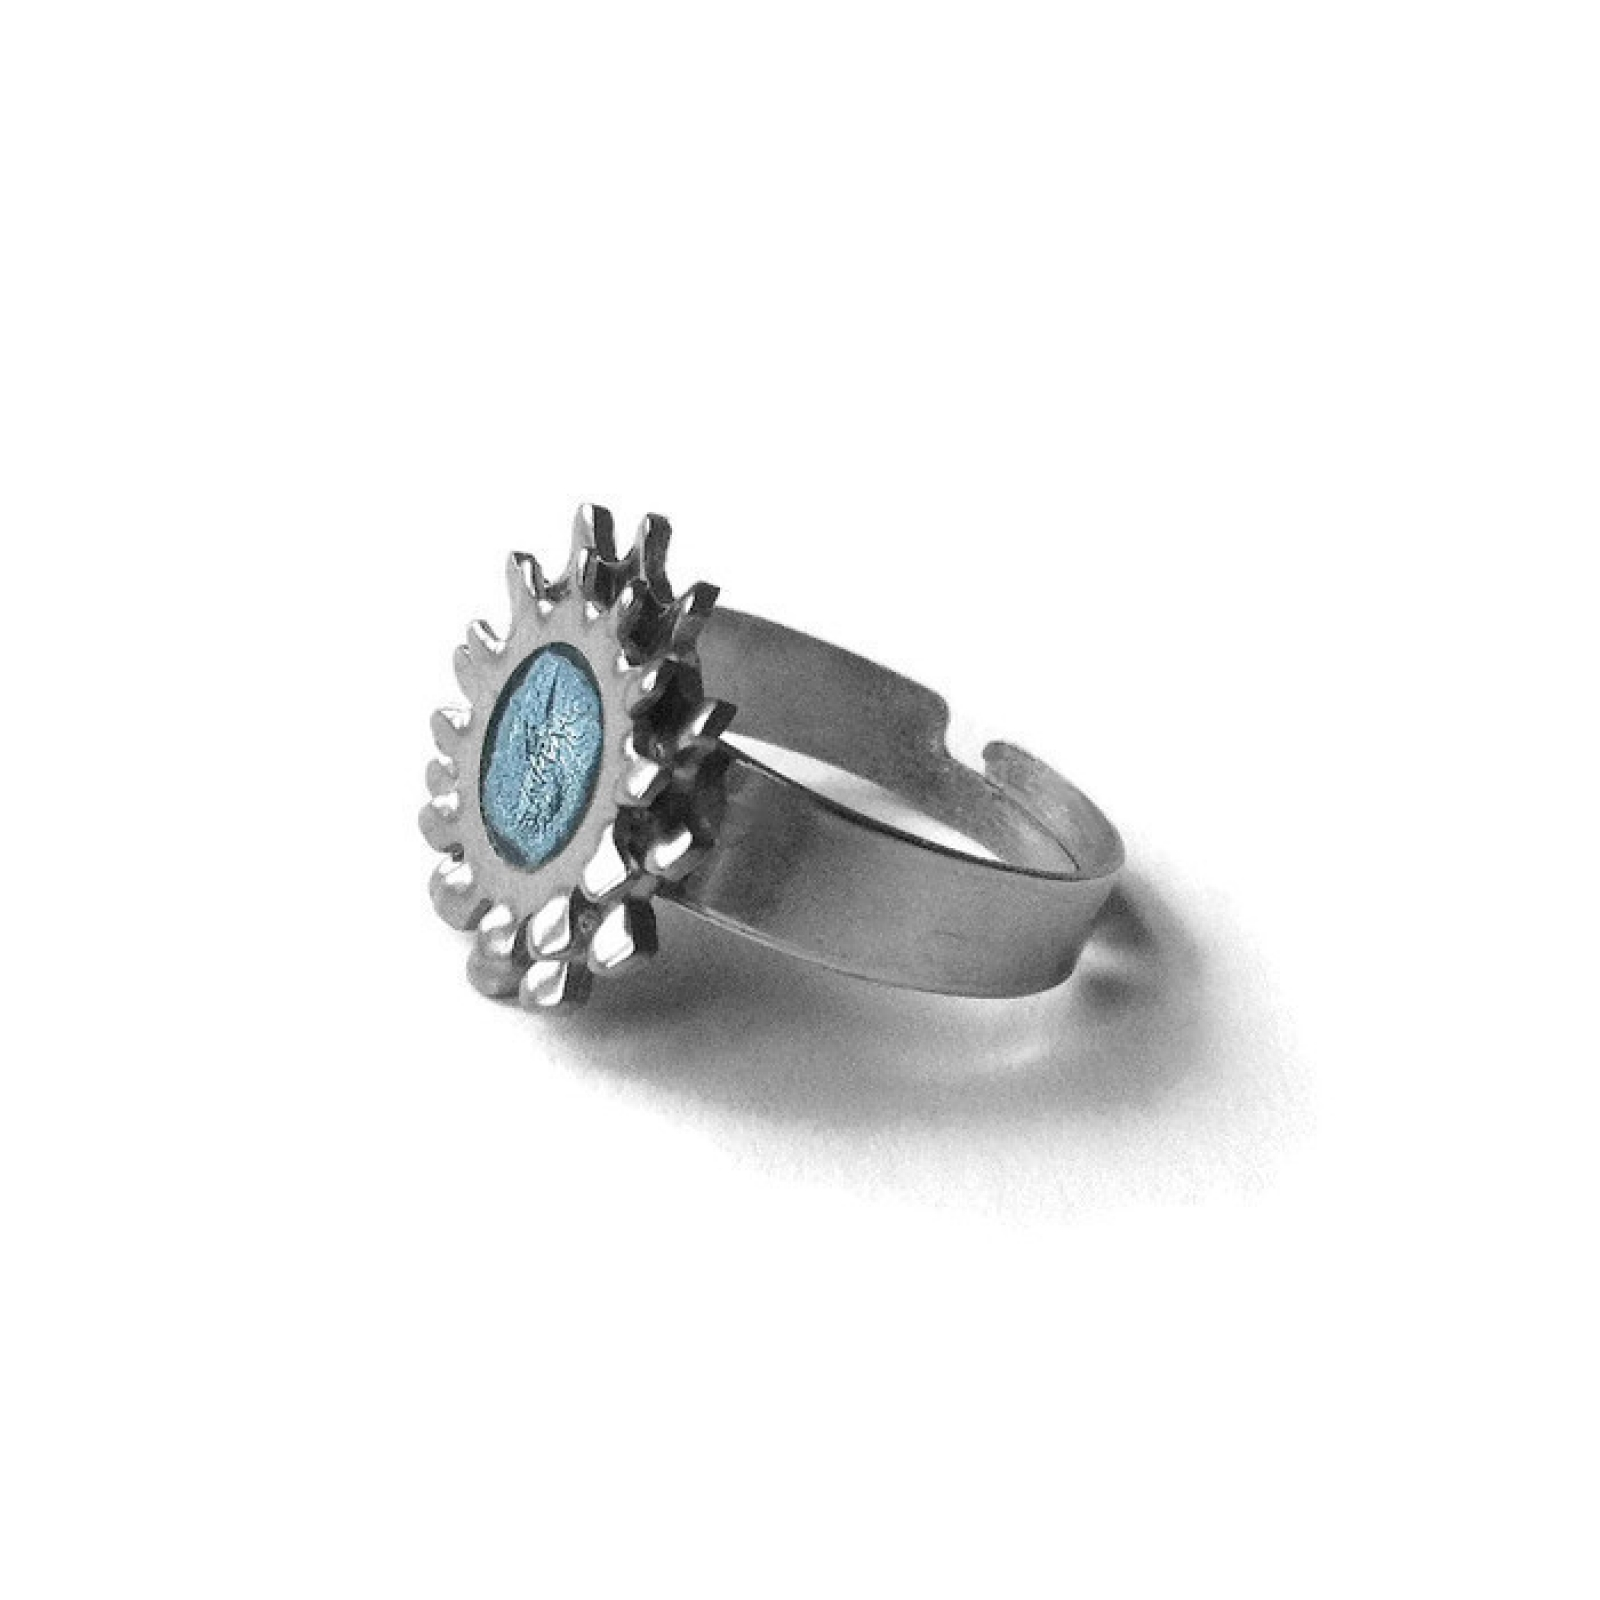 Womens Silver Gear Ring Stainless Steel | Loralyn Designs